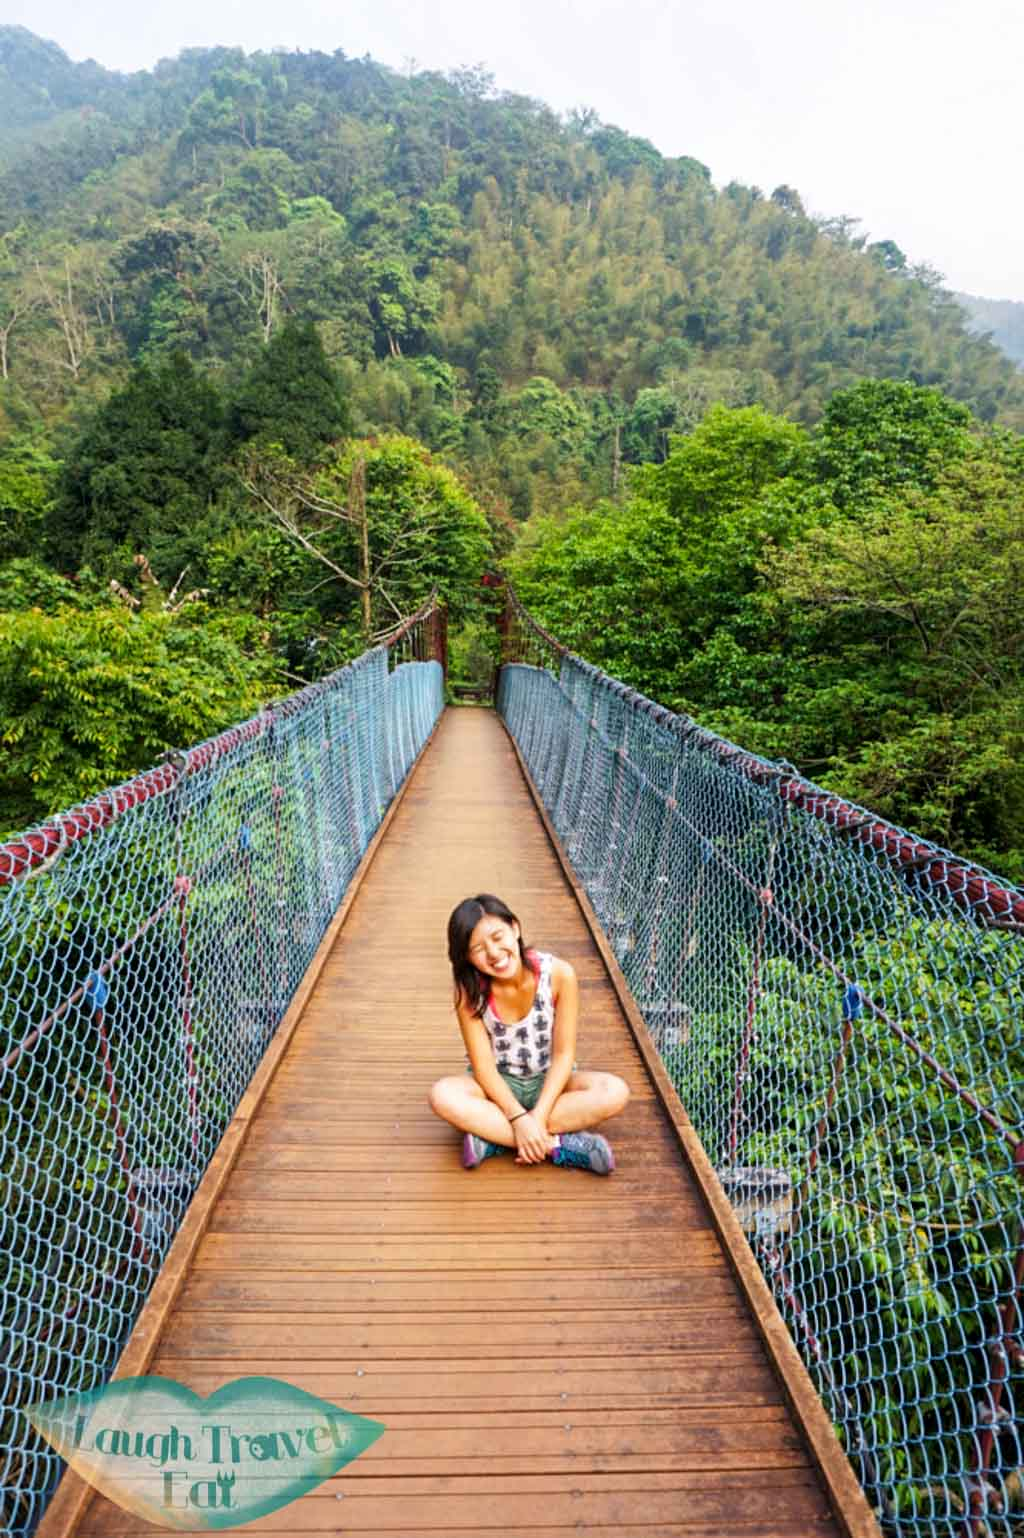 posing on the empty hanging bridge in Dasyueshan National Forest Recreational Area, Taichung - Laugh Travel Eat